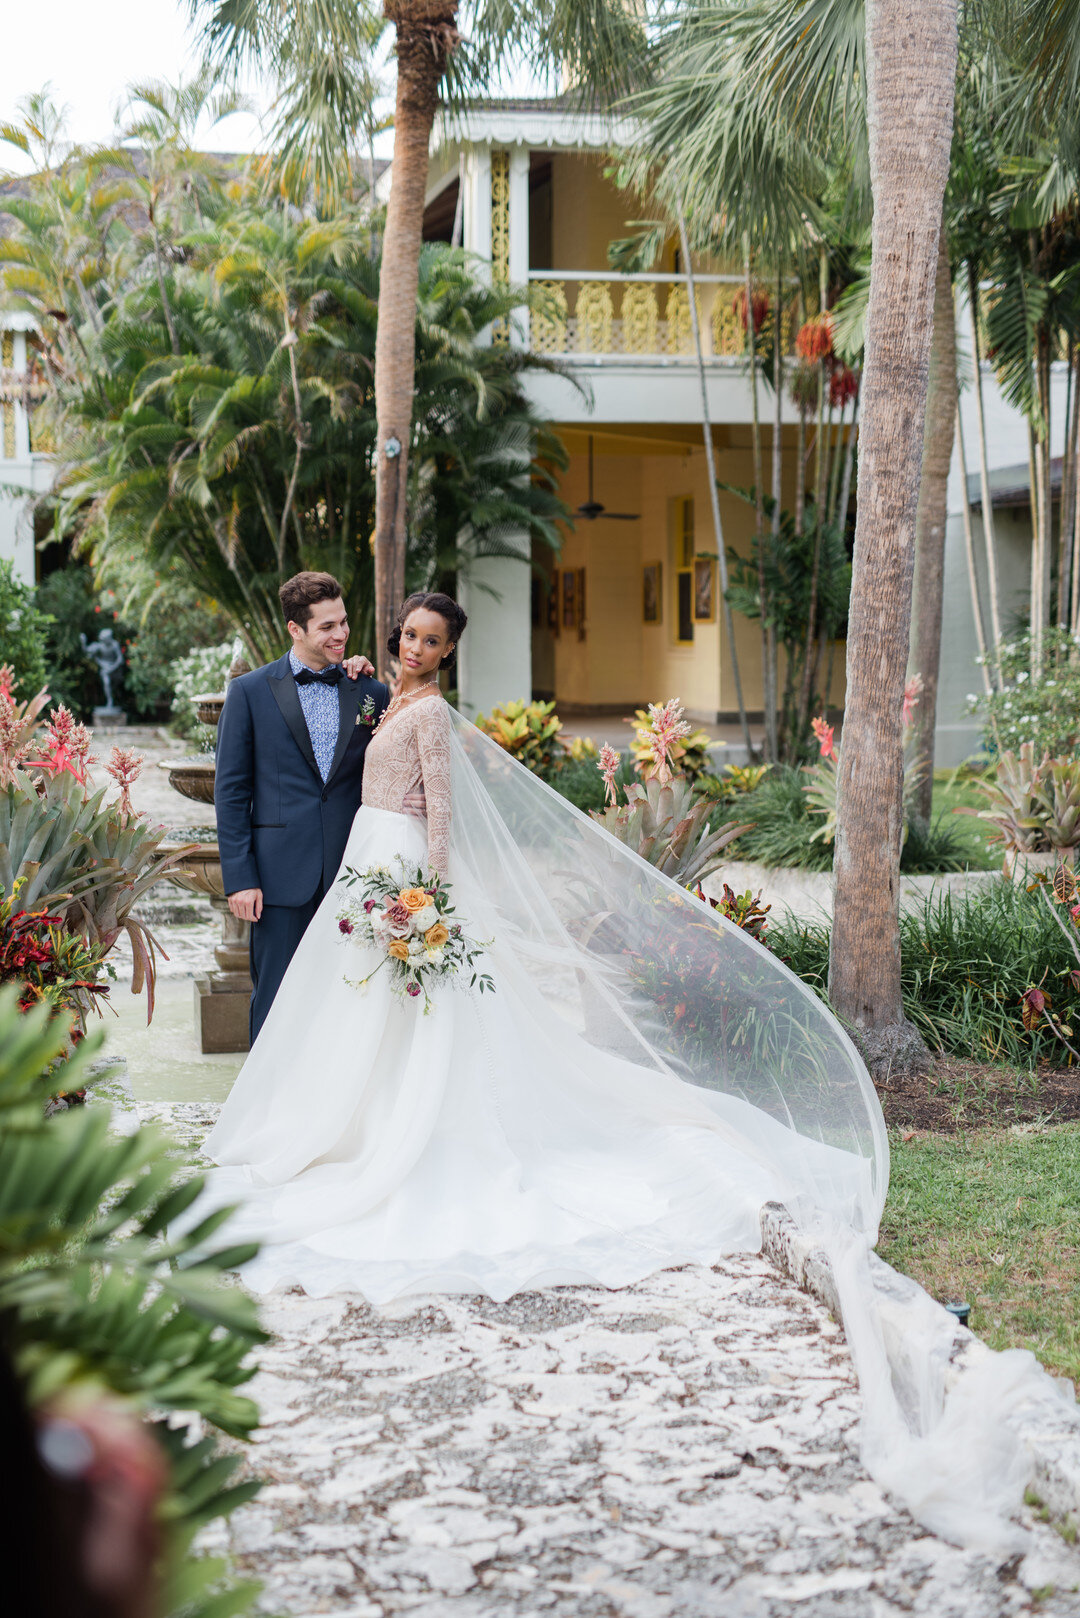 Vintage Southern Charm at Historic Bonnet House  & Gardens_Suzanne Lytle Photography_FortLauderdaleStylized264_big.JPG